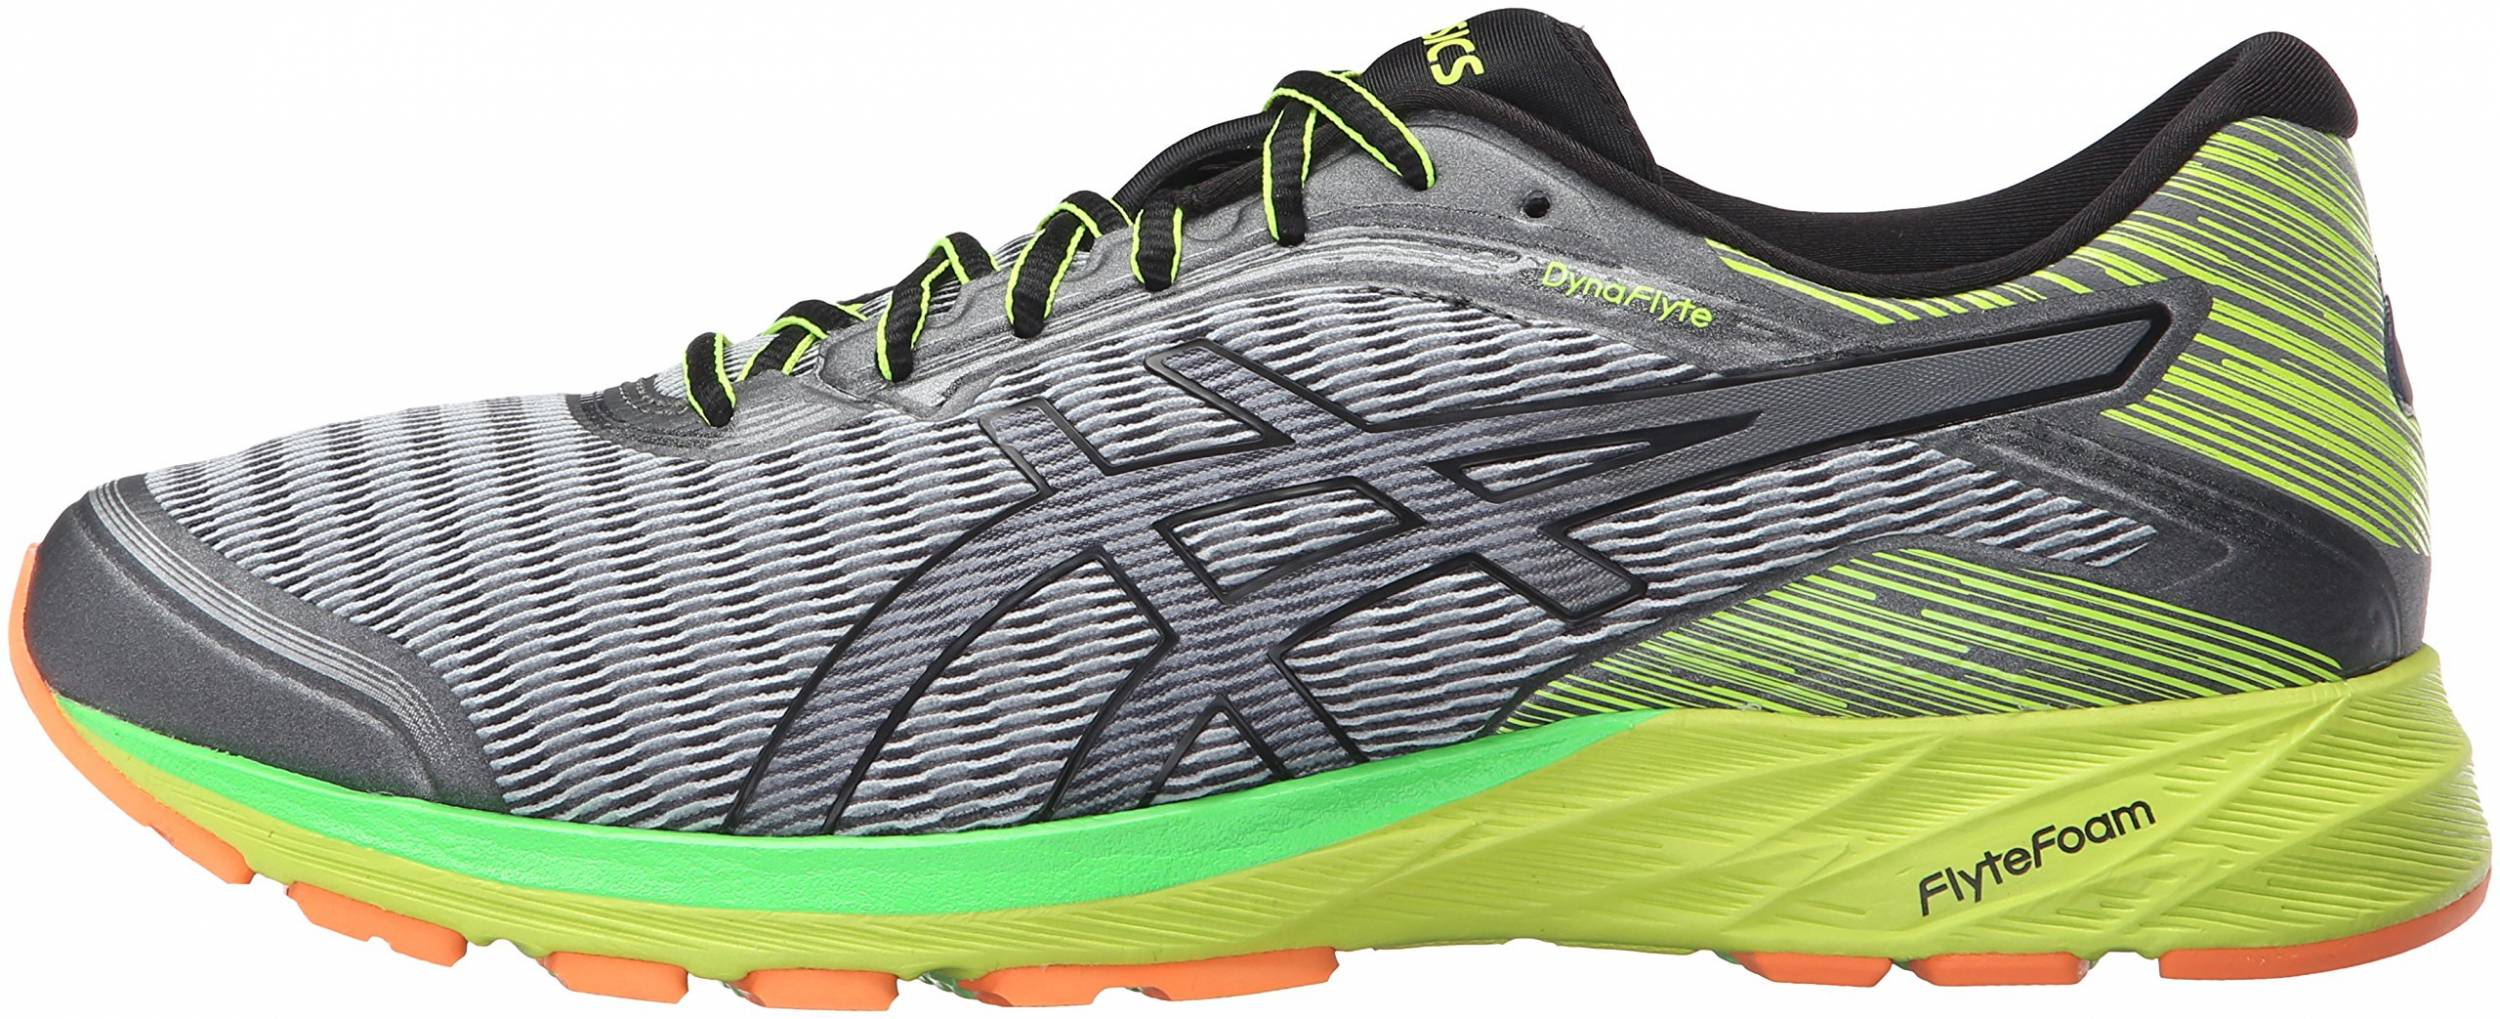 Only $60 + Review of Asics DynaFlyte